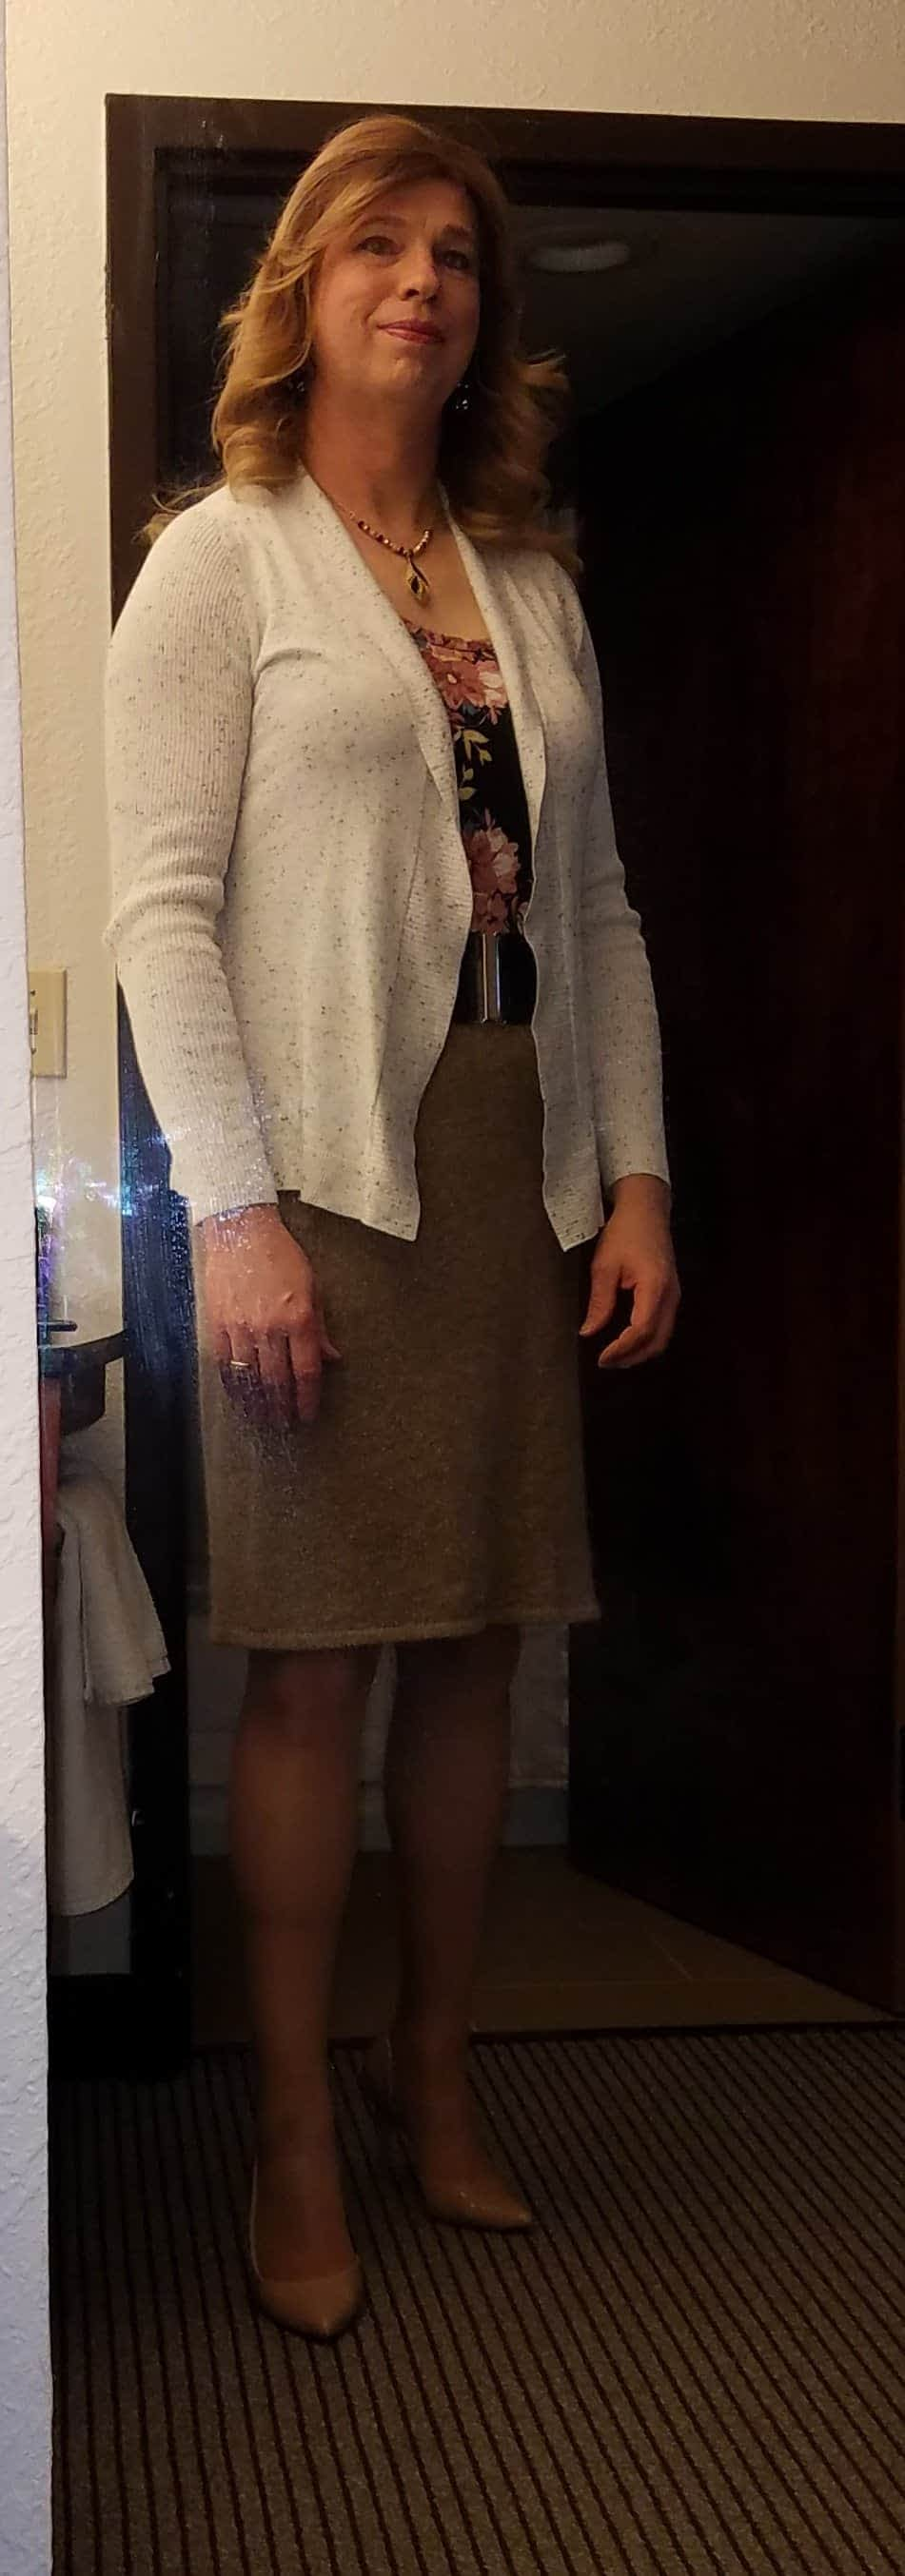 Latest Outfit 1